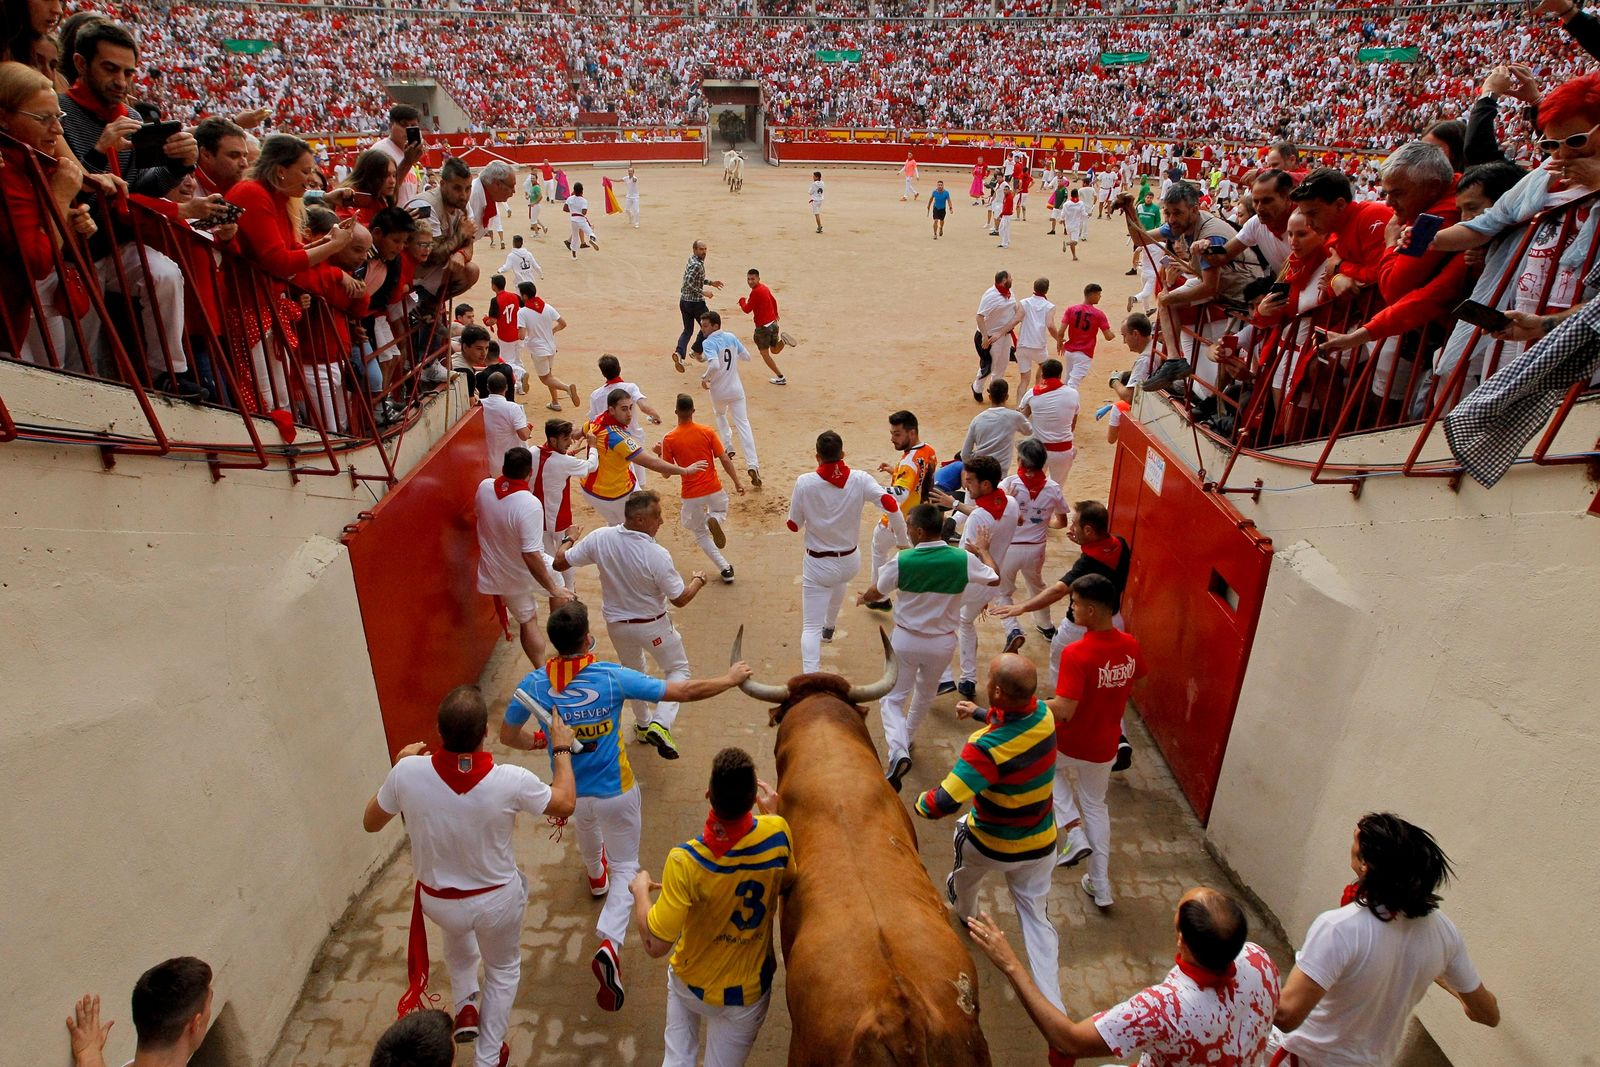 "Revellers and a fighting bull arrive at the bullring during the running of the bulls at the San Fermin Festival, in Pamplona, northern Spain, Sunday, July 14, 2019. The San Fermin fiesta made internationally famous by Ernest Hemingway in his novel ""The Sun Also Rises"" draws around 1 million partygoers each year.(AP Photo/Alvaro Barrientos)"